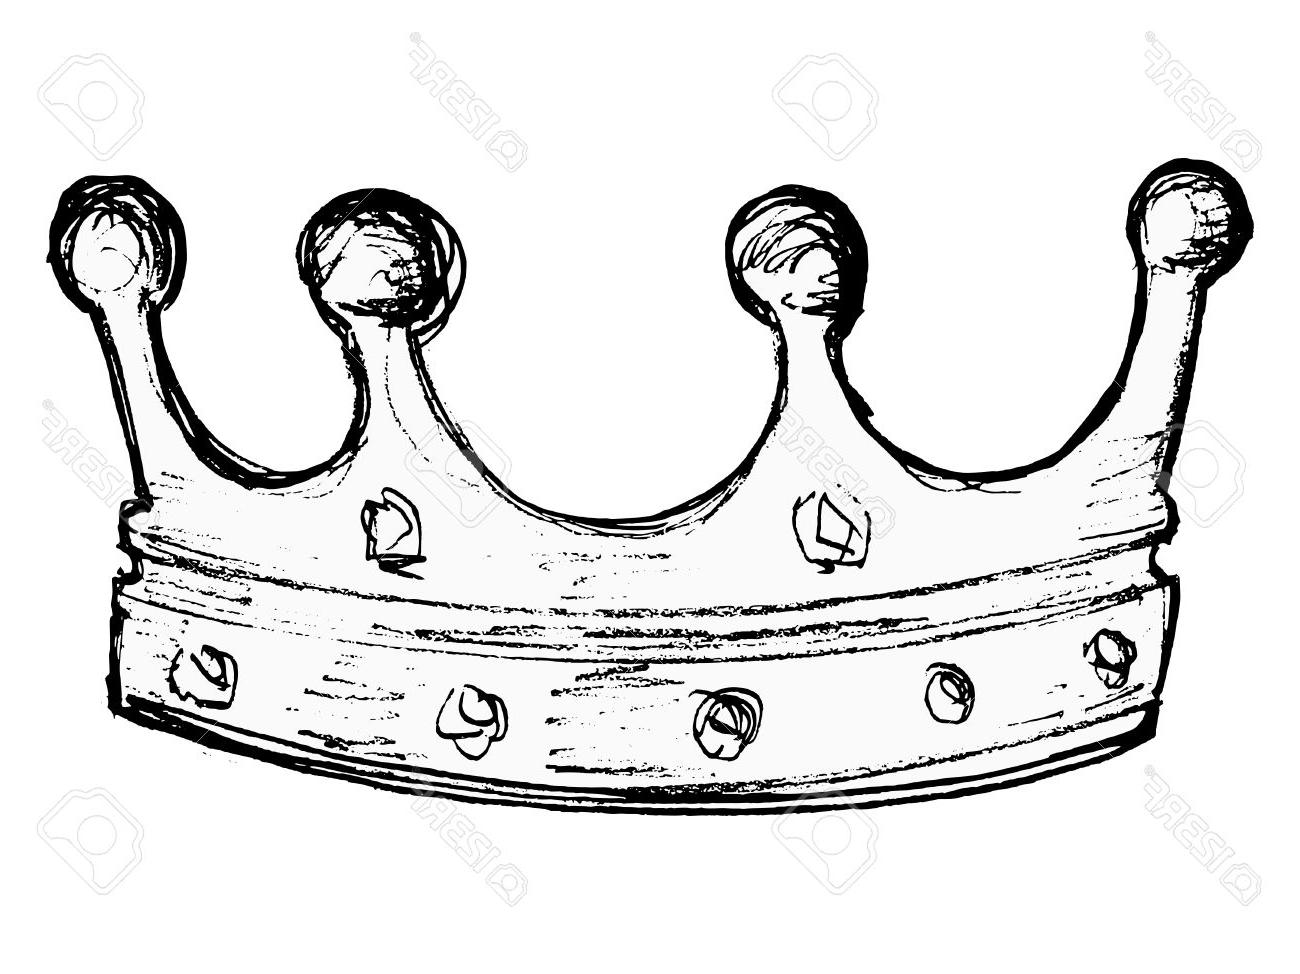 1300x974 Hd Hand Drawn Vector Sketch Illustration Of Crown Stock Cdr